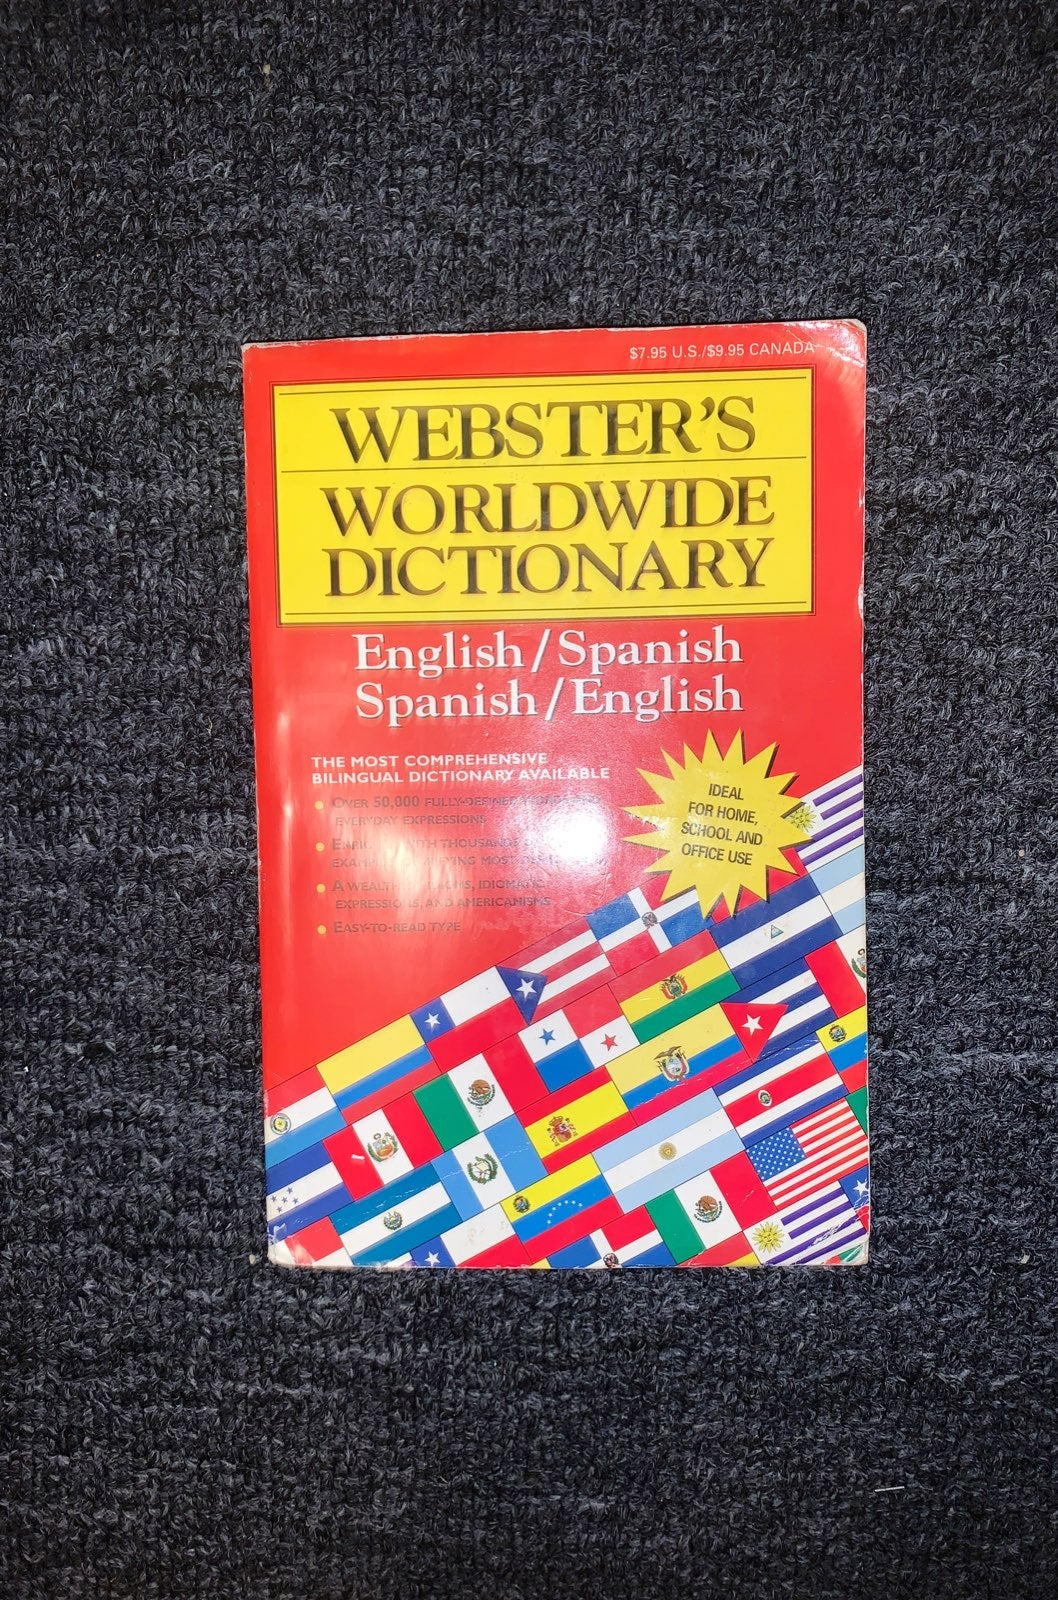 Websters world wide dictionary